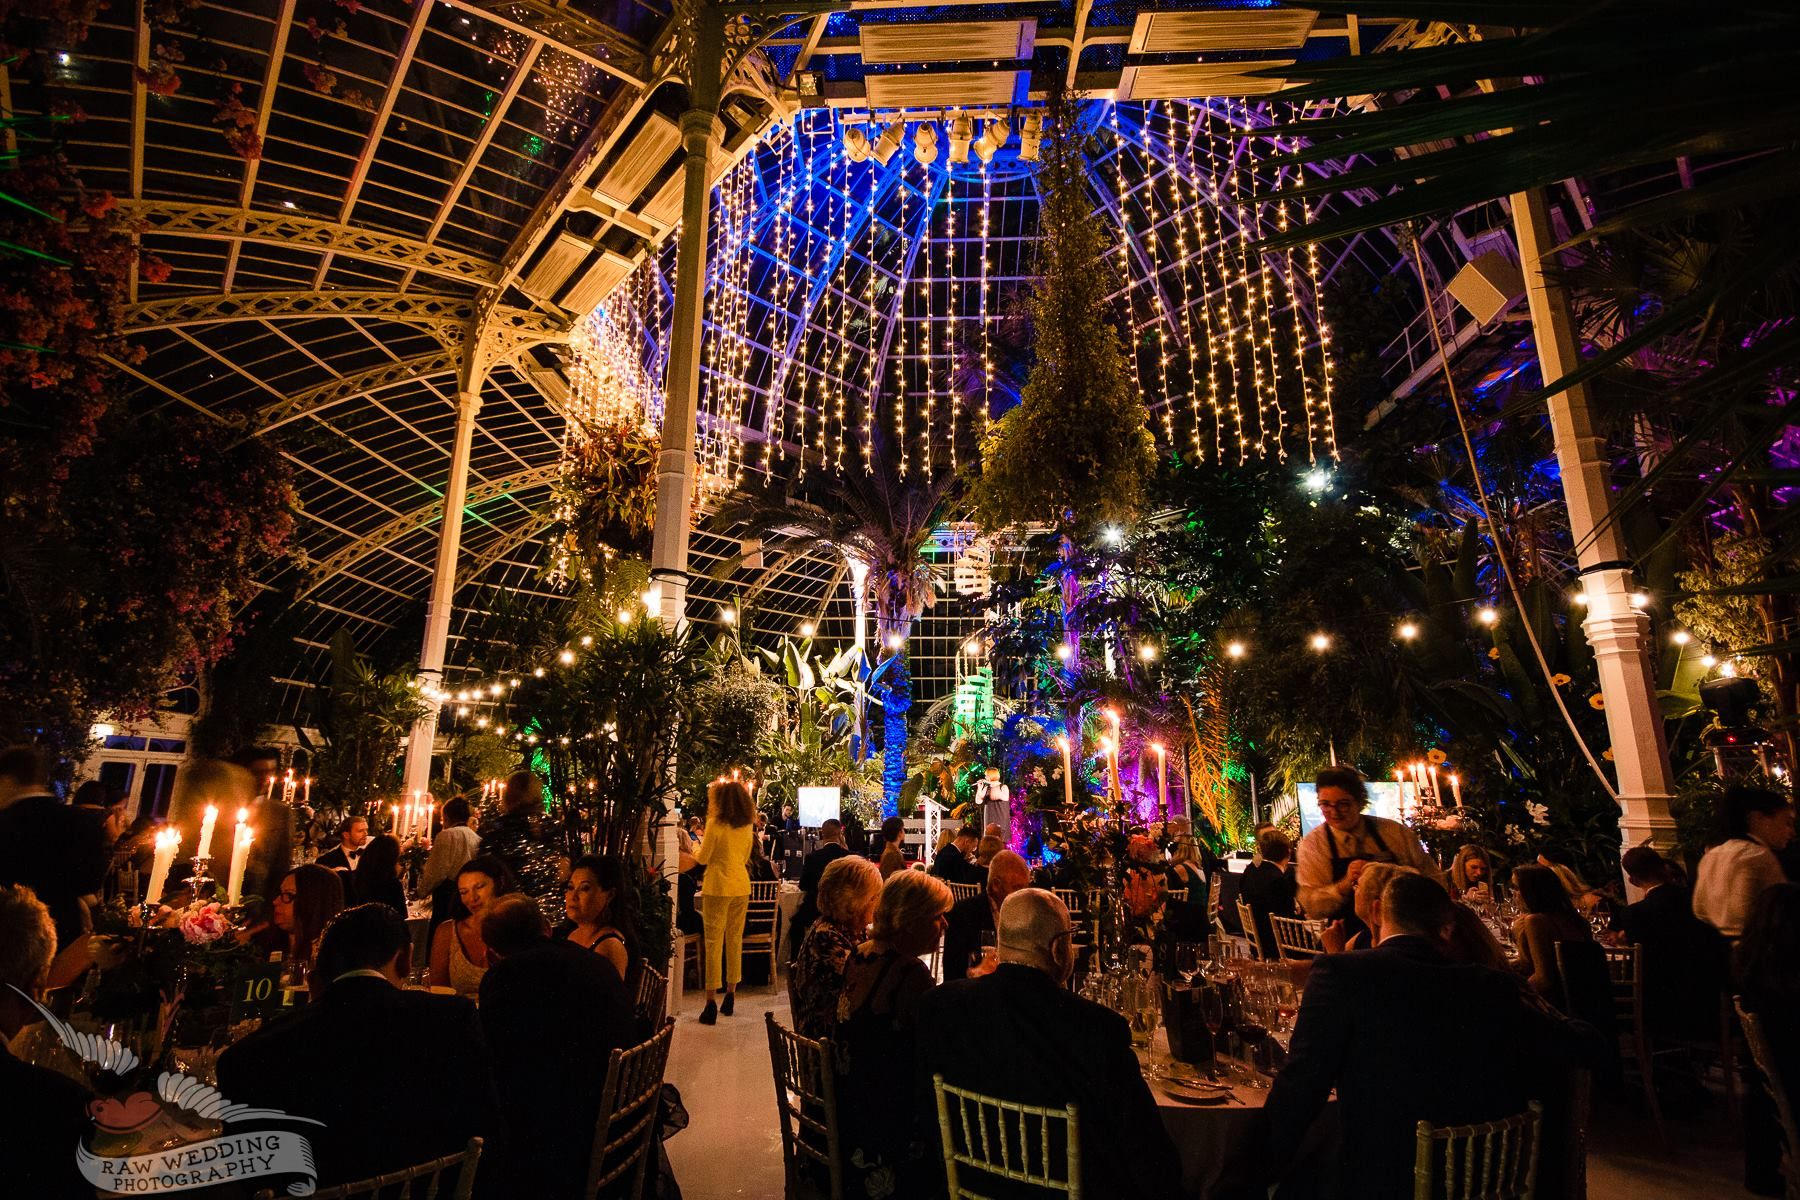 Private Dinner at Sefton Park Palm House - Charity Dinner for the Henry Yates Thompson Fund #seftonpark #seftonpalmhouse #privatedinner #charitydinner #liverpoolvenue